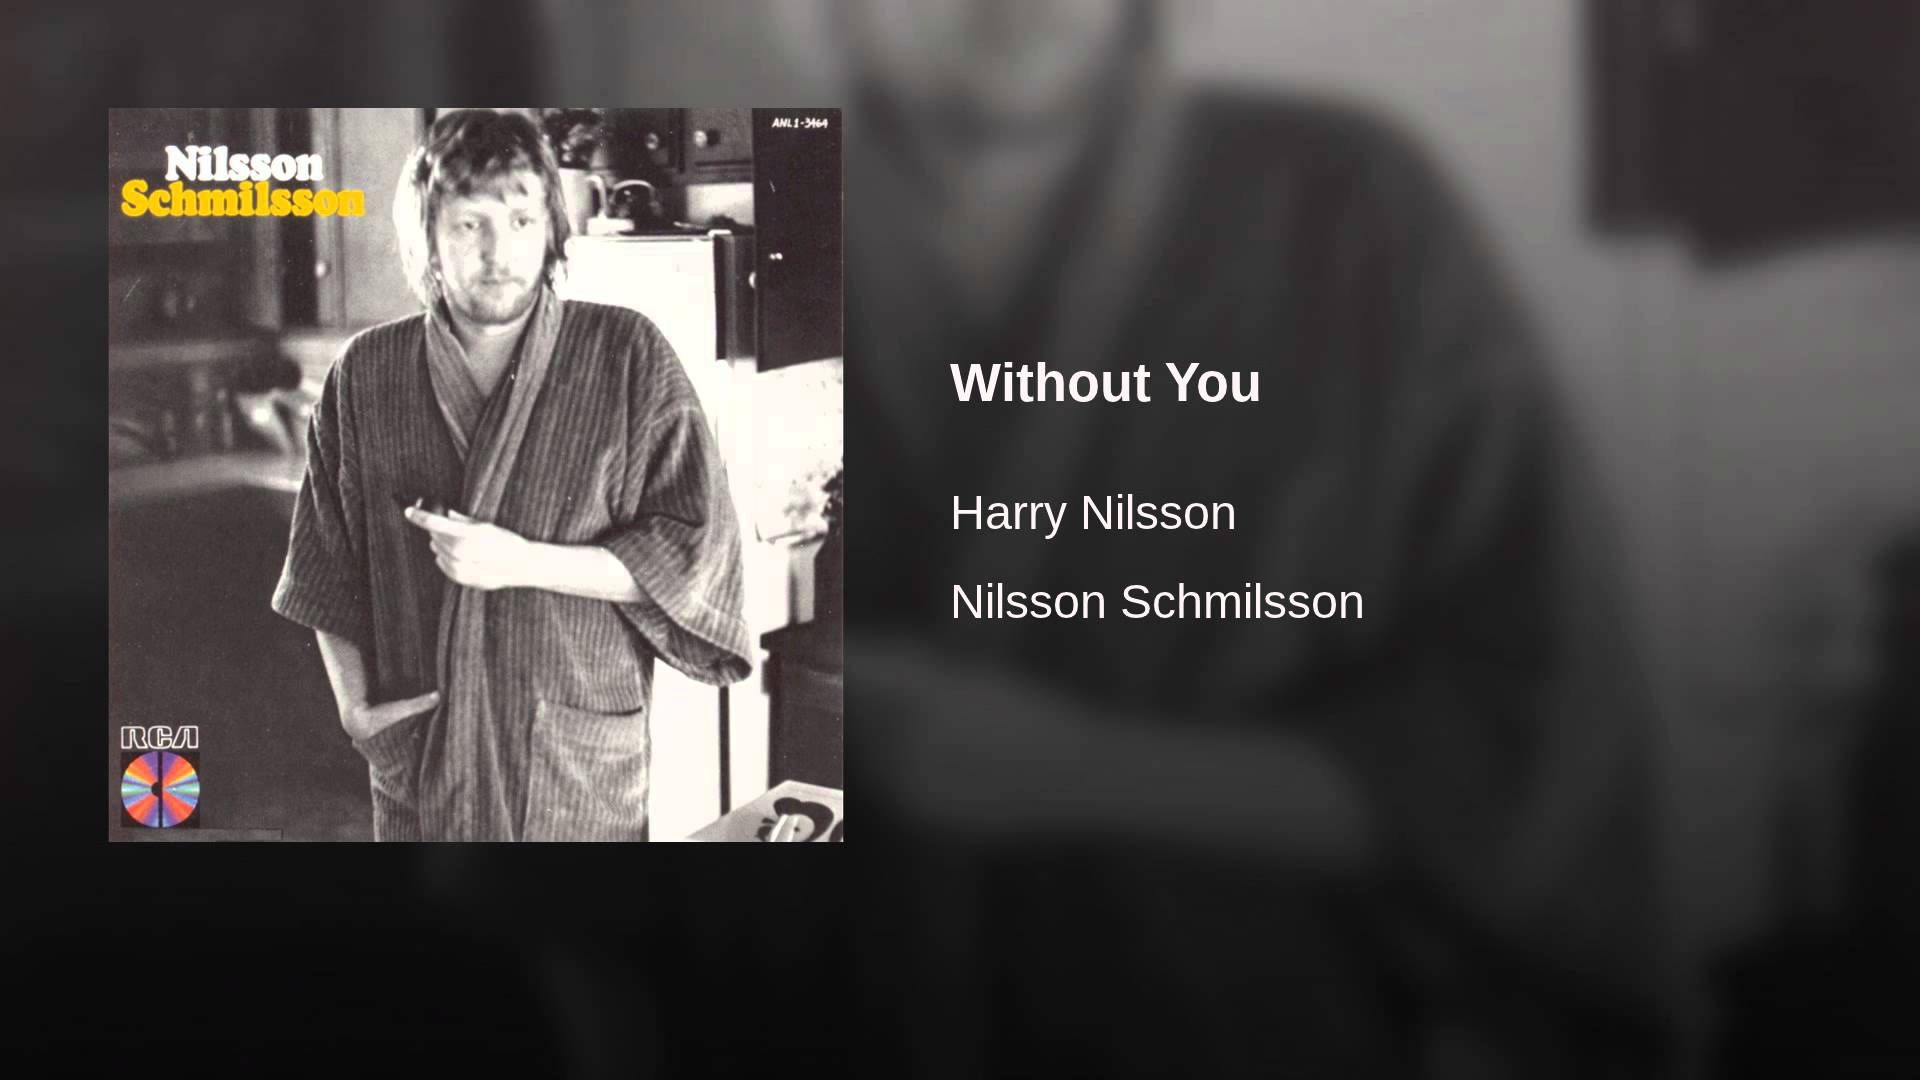 Without You Harry nilsson, Pretty songs, Songs